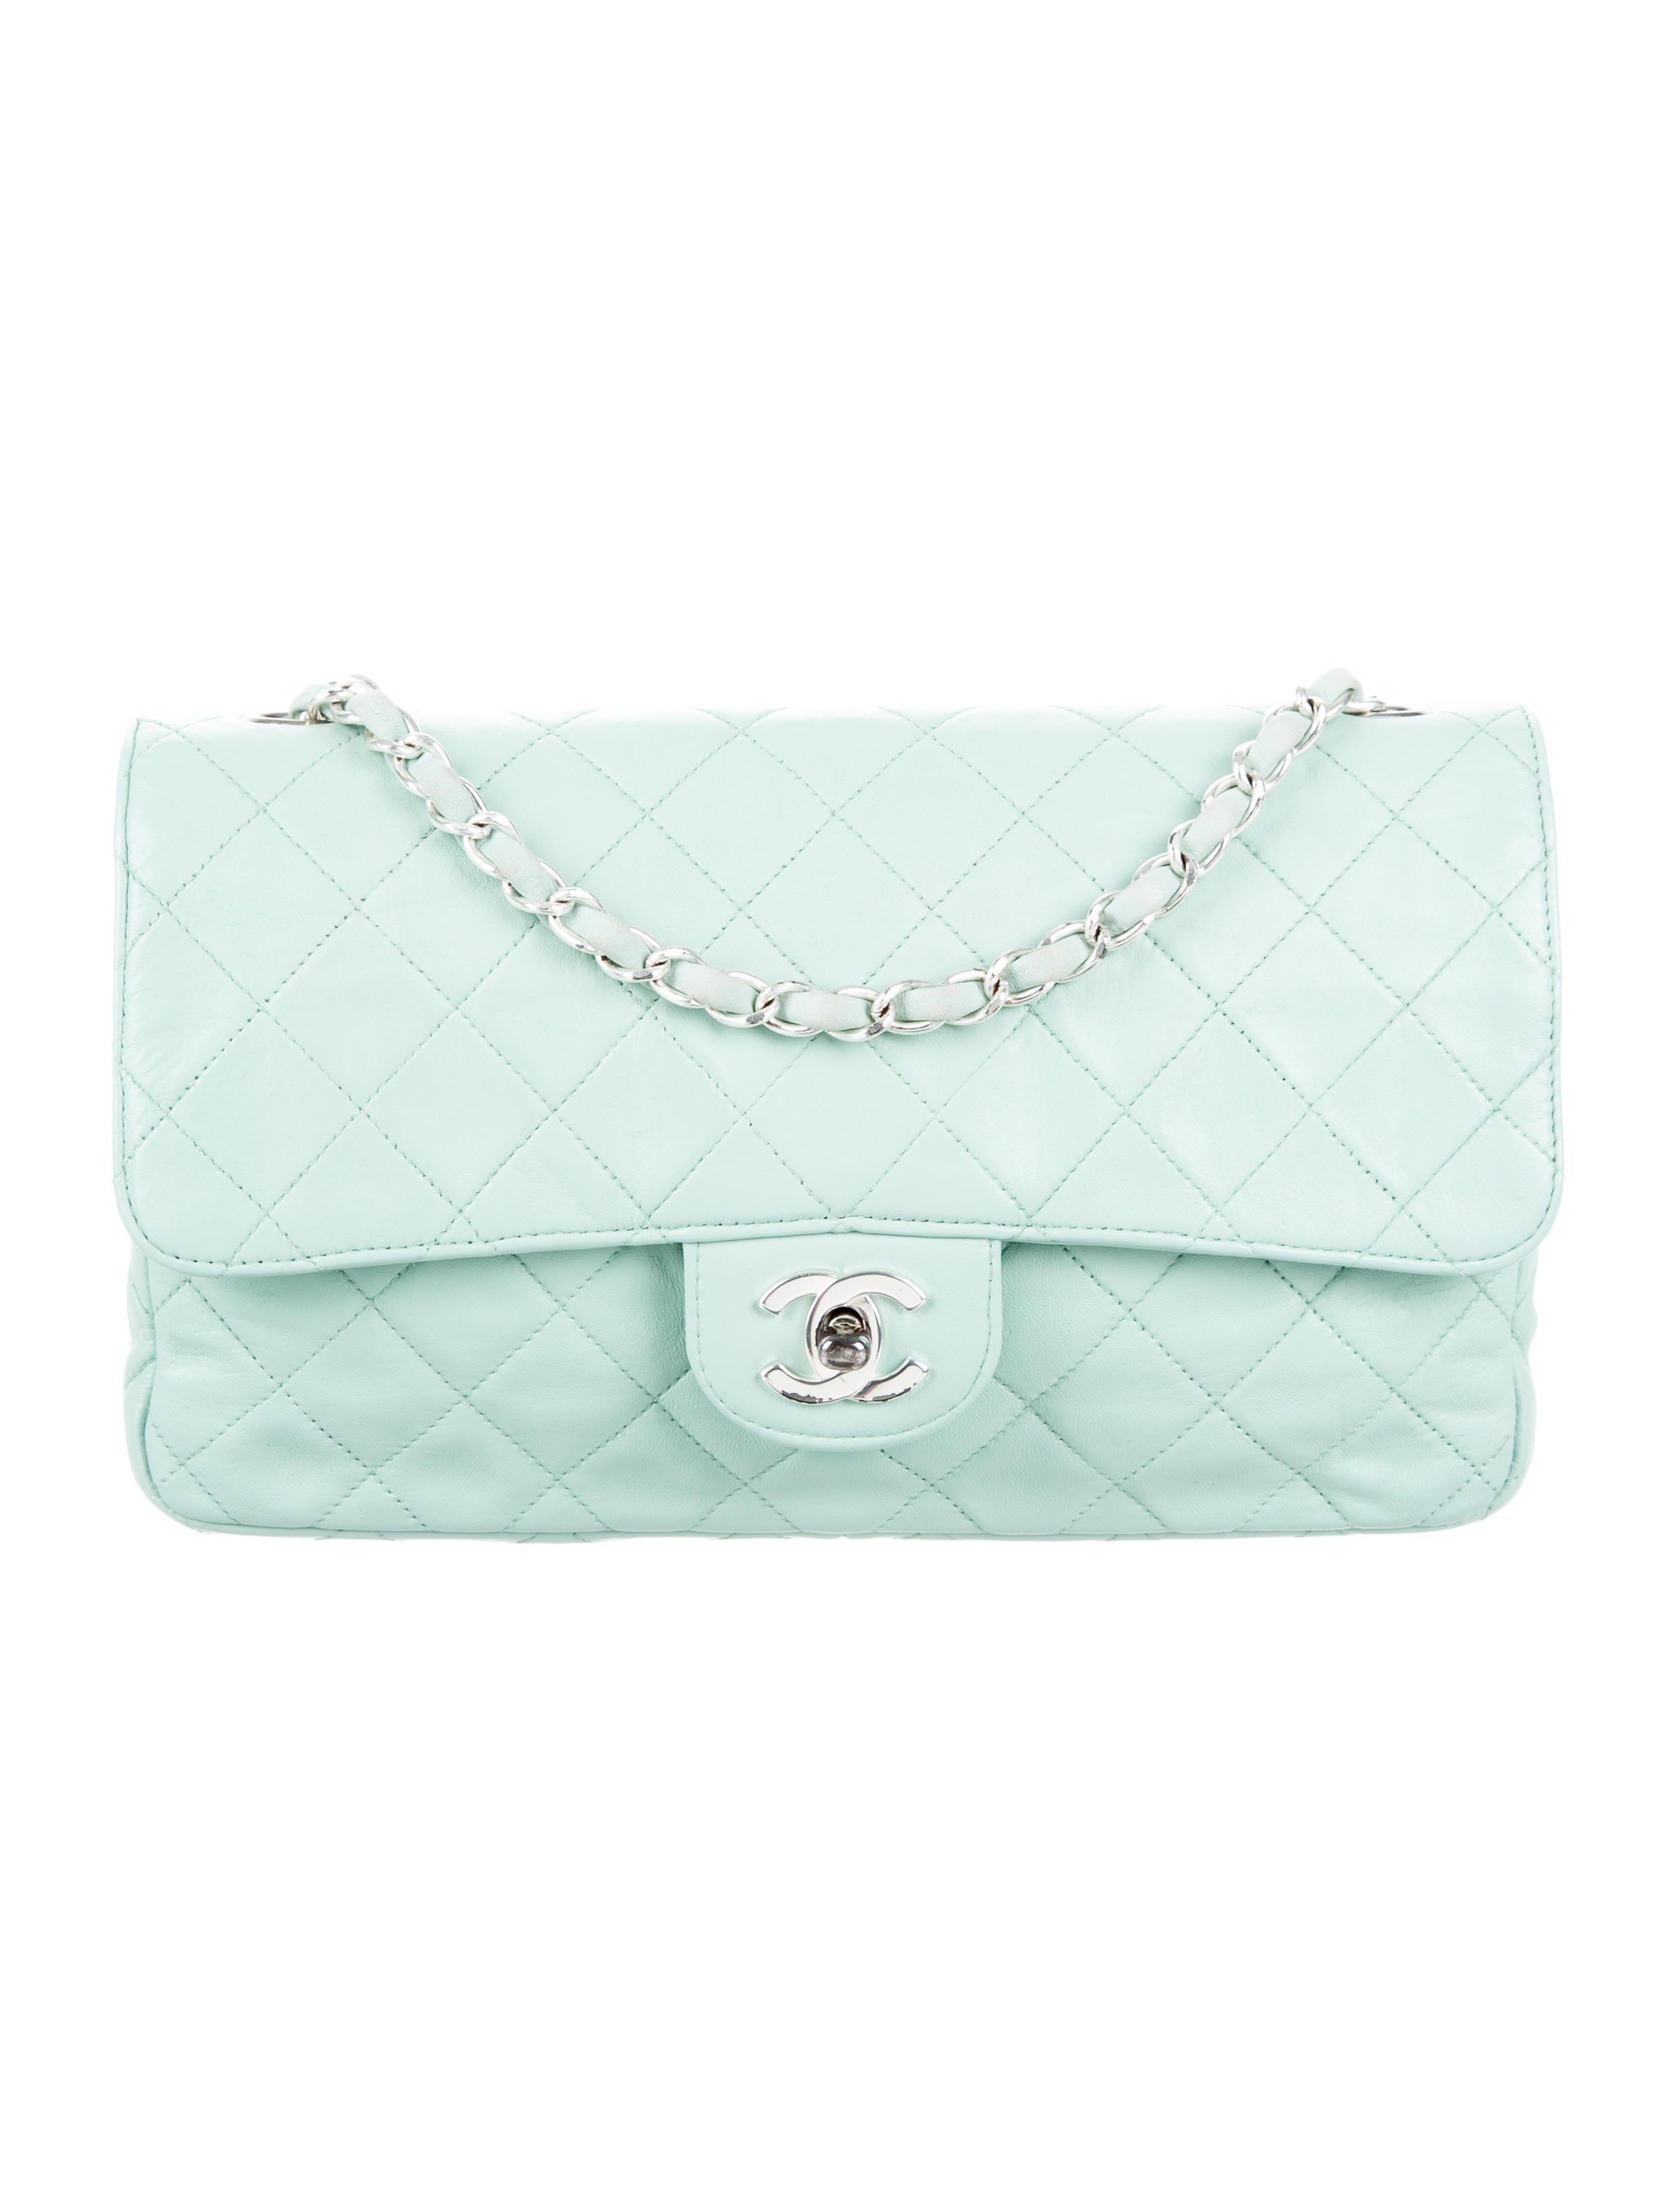 ed72842589f Lyst - Chanel Quilted Single Flap Bag Mint in Metallic